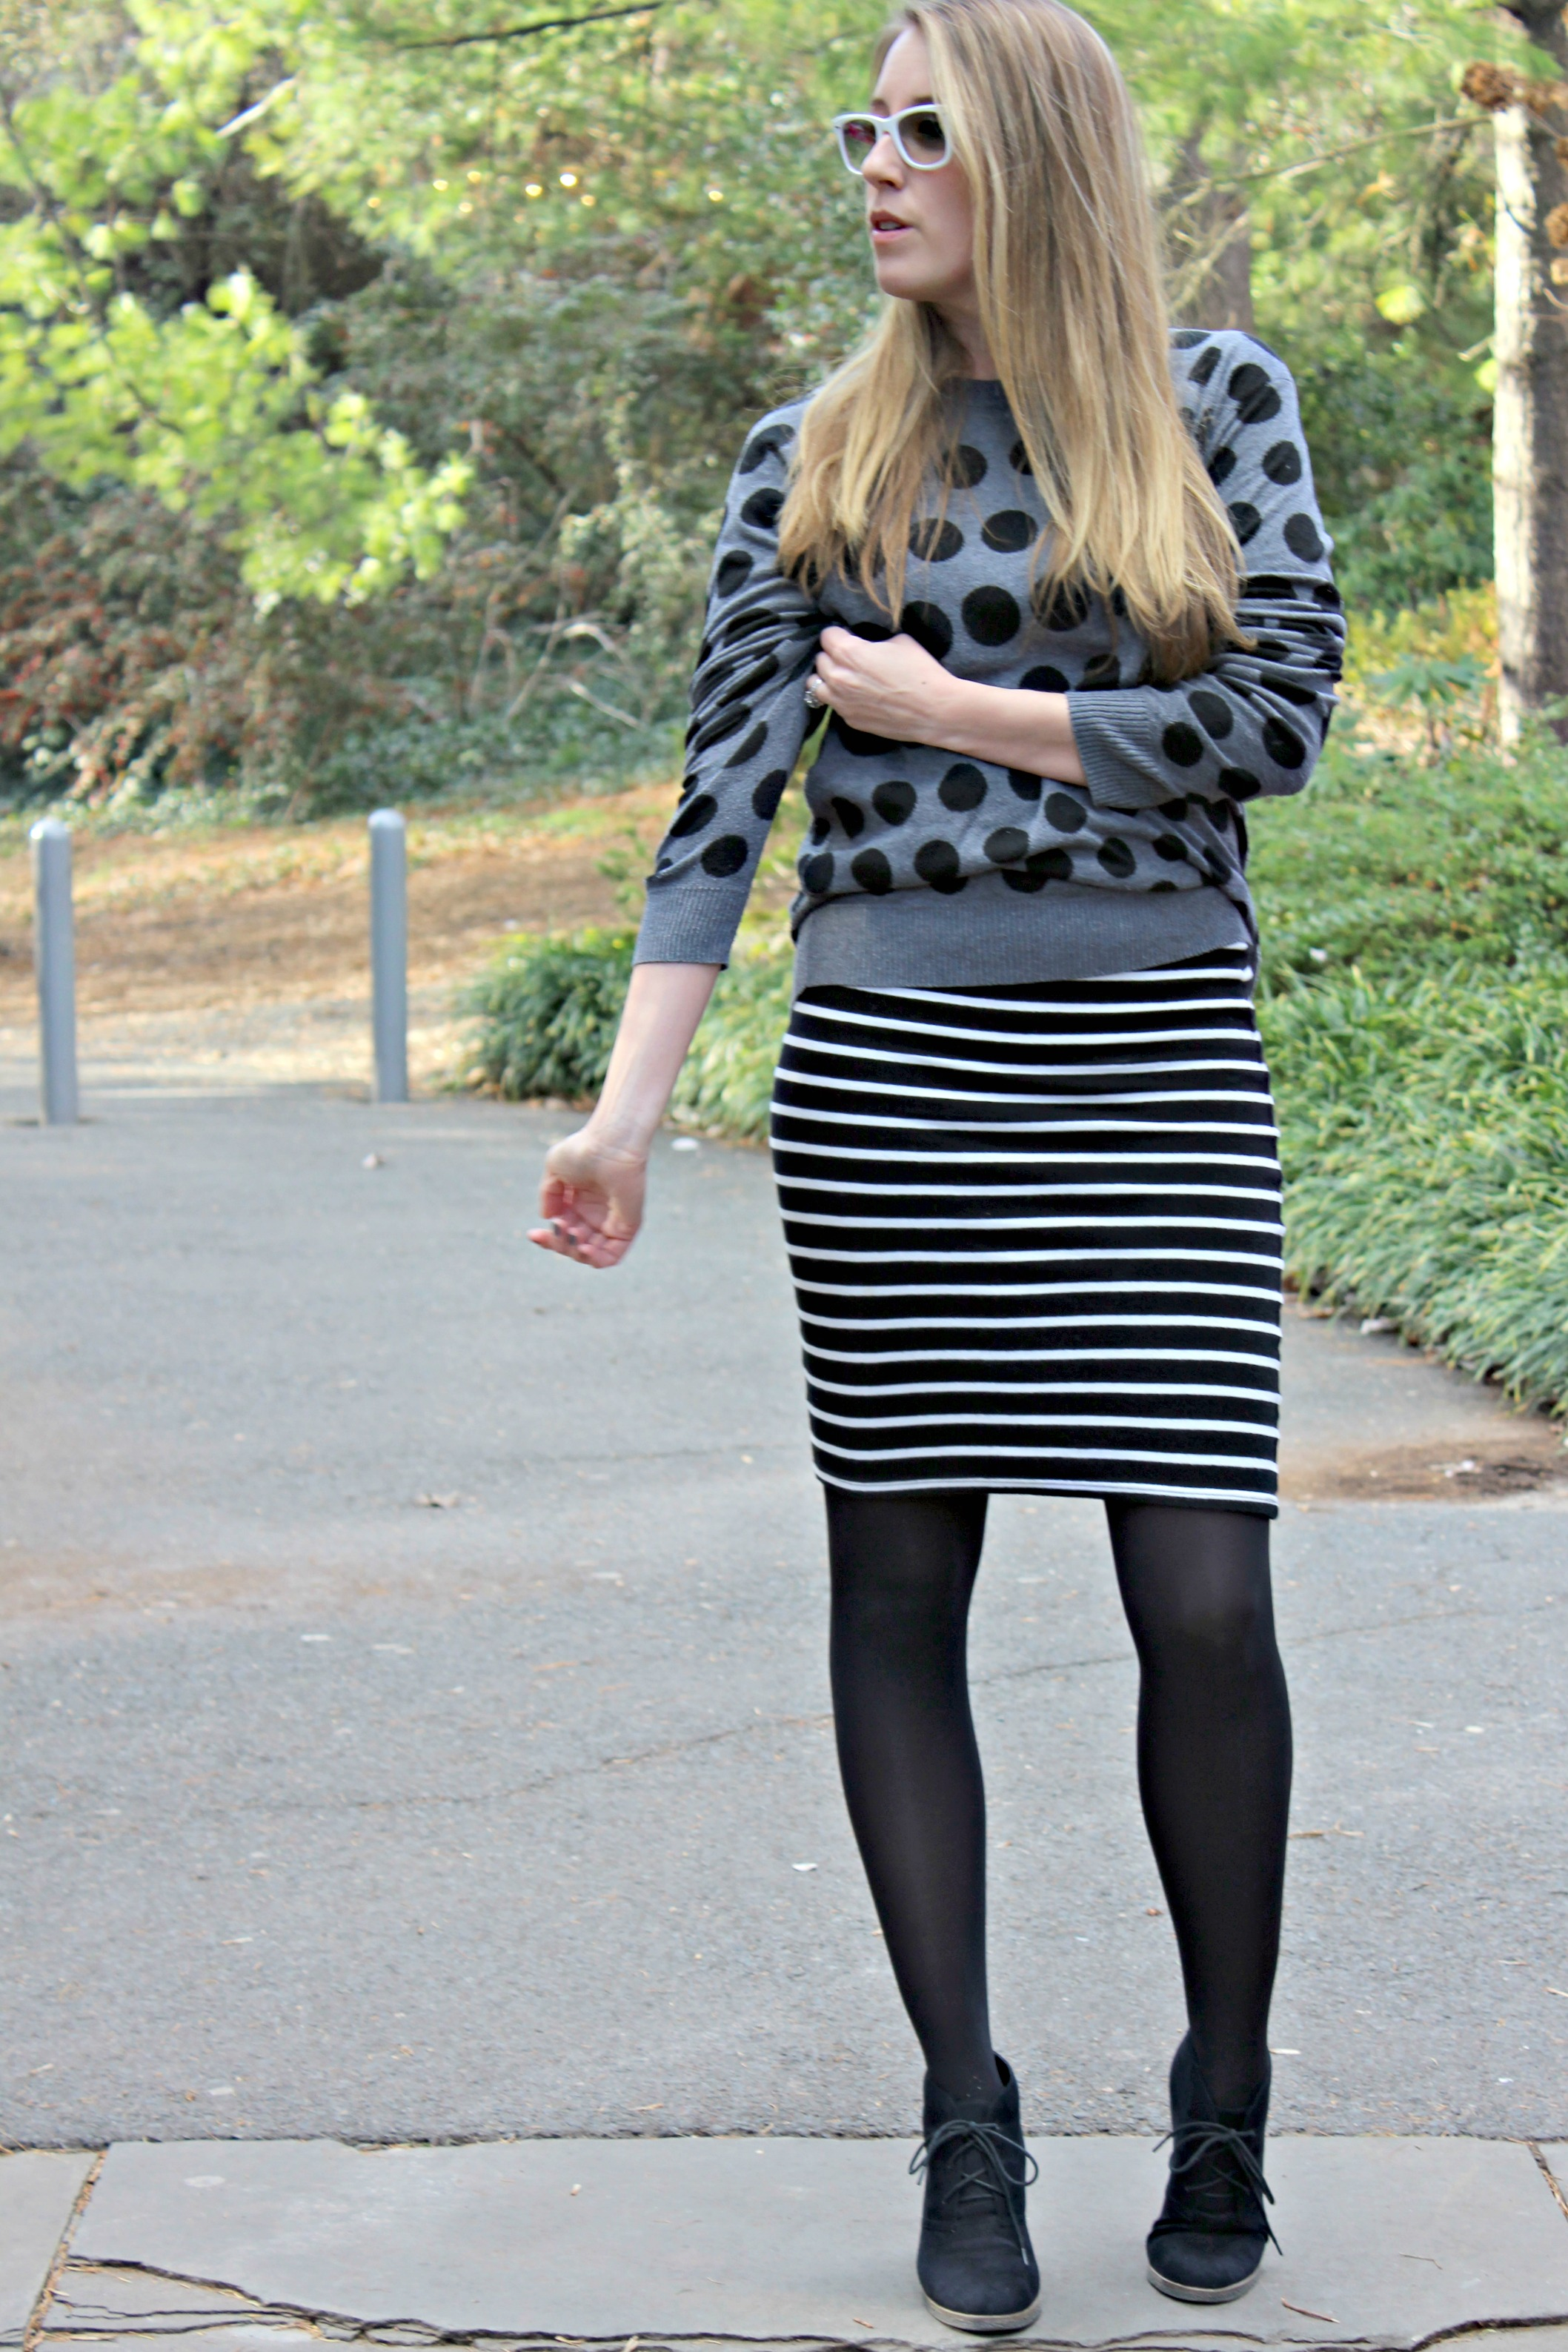 Wearing: Black and Spotty